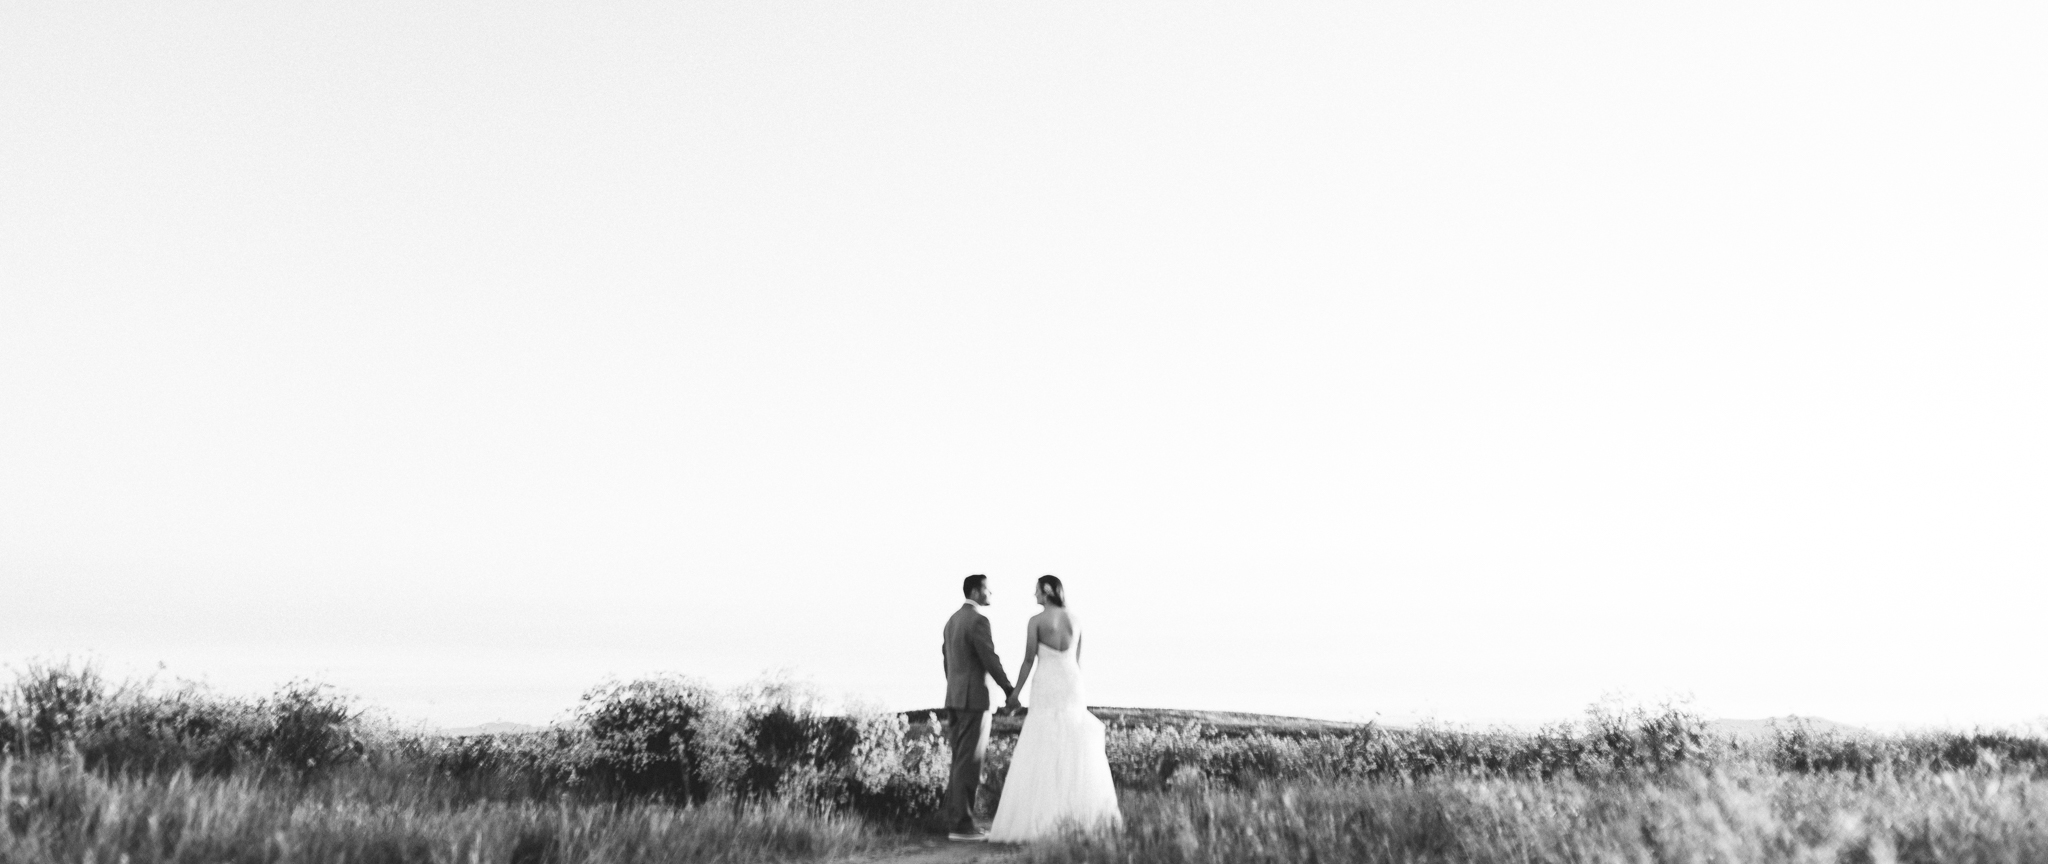 Isaiah & Taylor Photography - Destination Photographers - Temecula Winery Sunset Wedding-8.jpg